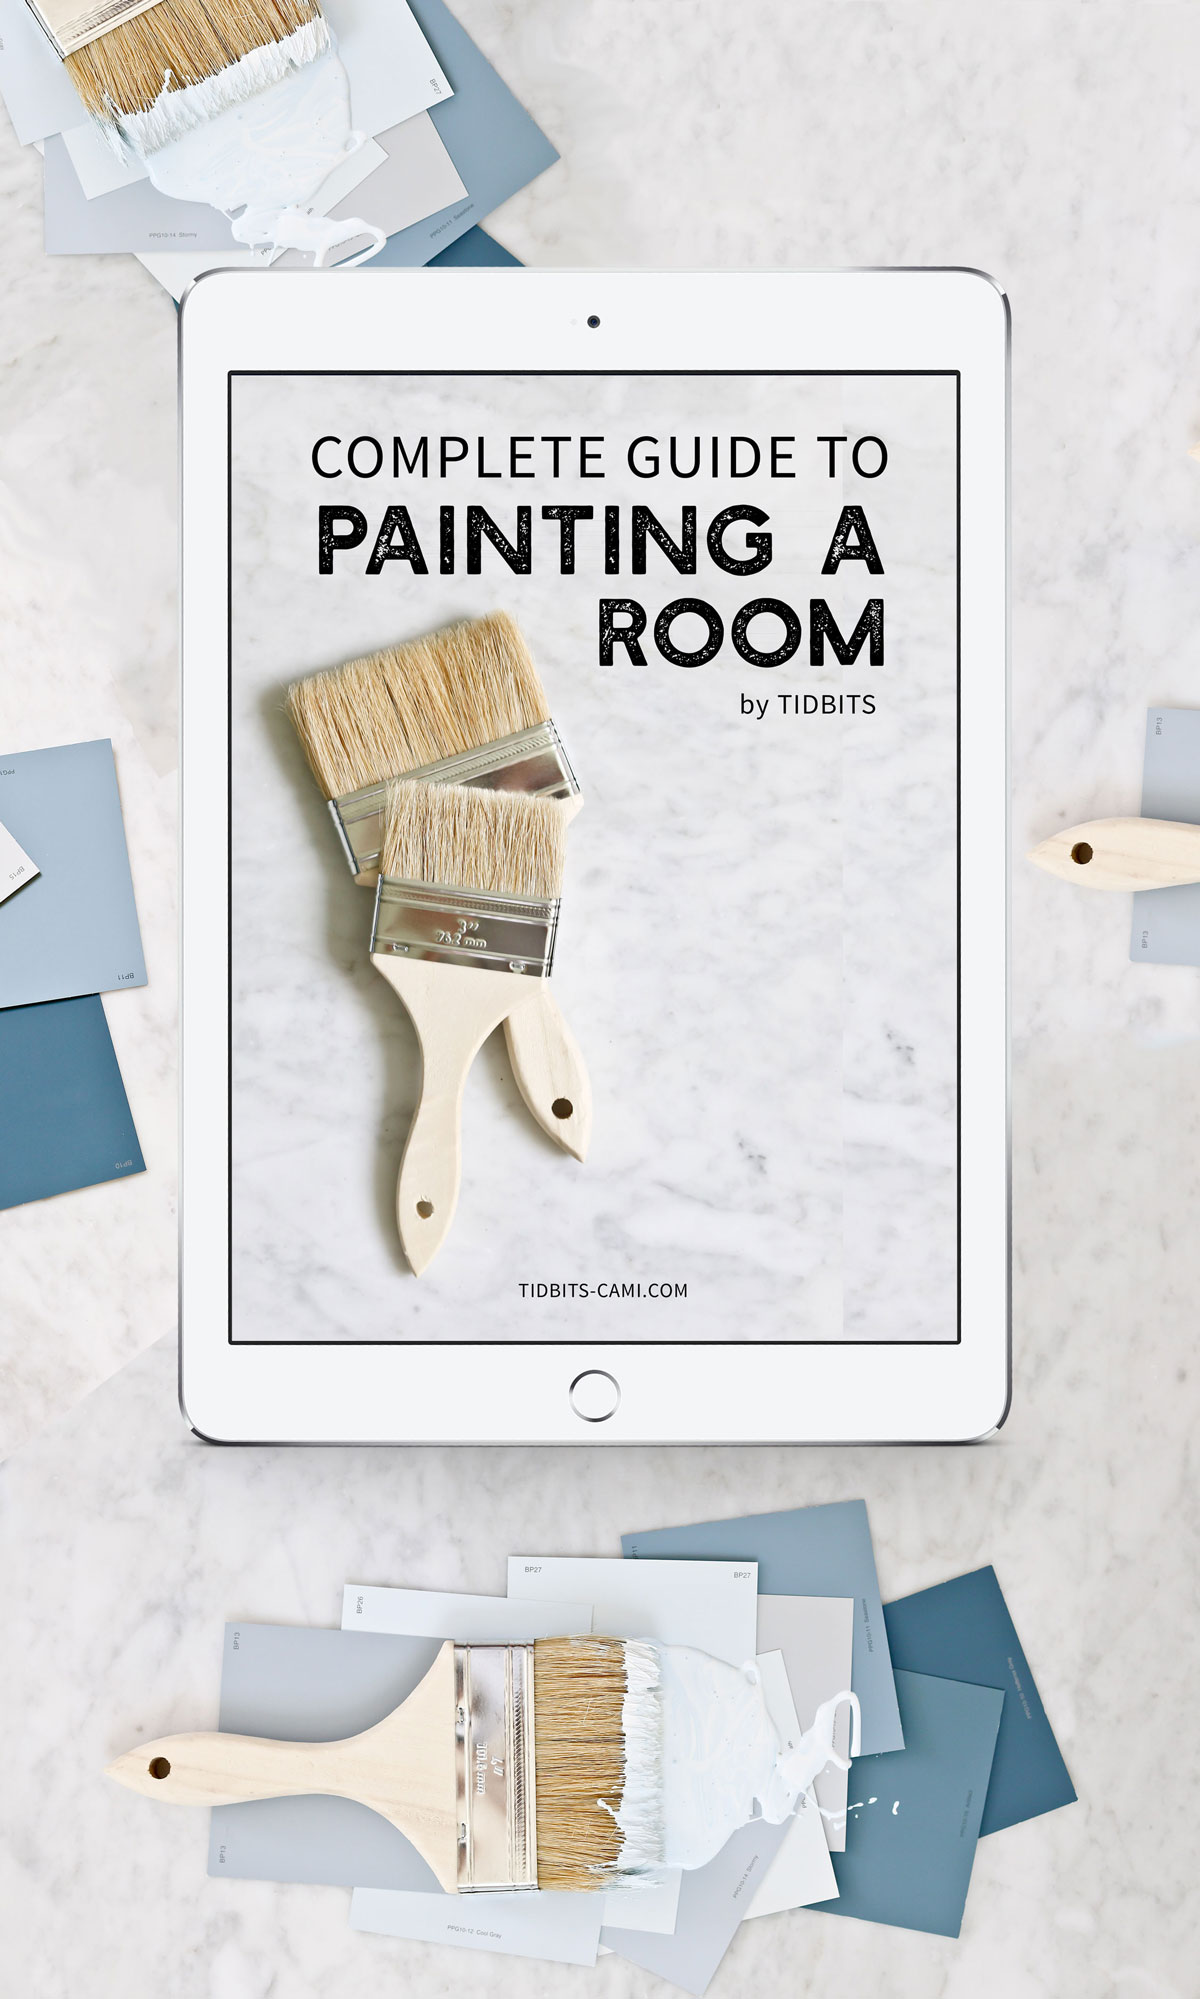 Complete guide to painting a room with TIDBITS